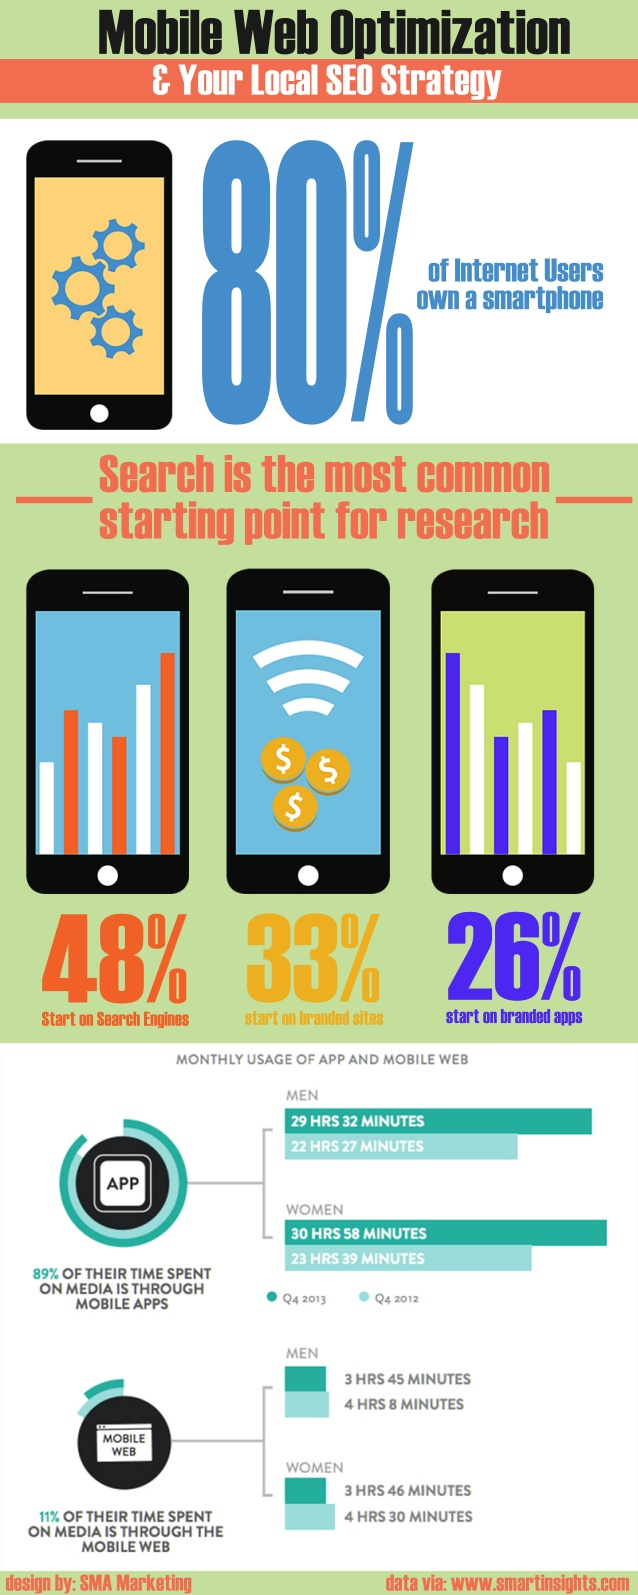 mobile web optimization your local seo stratey why it matters